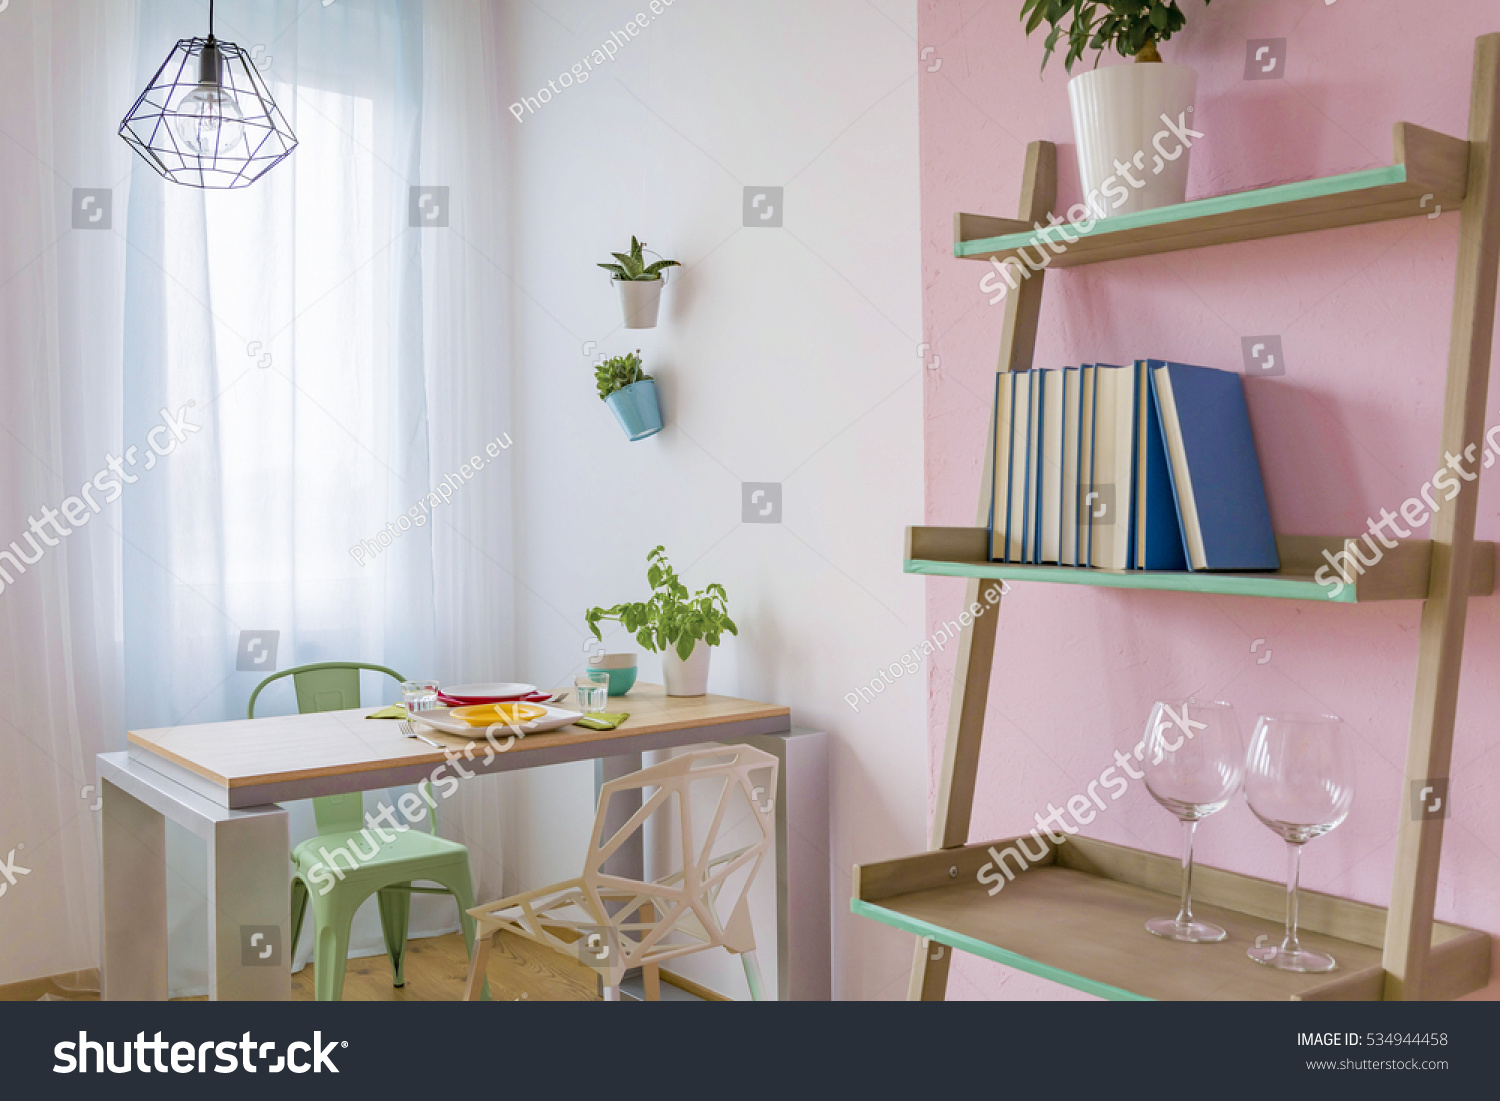 Cozy Dining Room Small Table Two Stock Photo 534944458